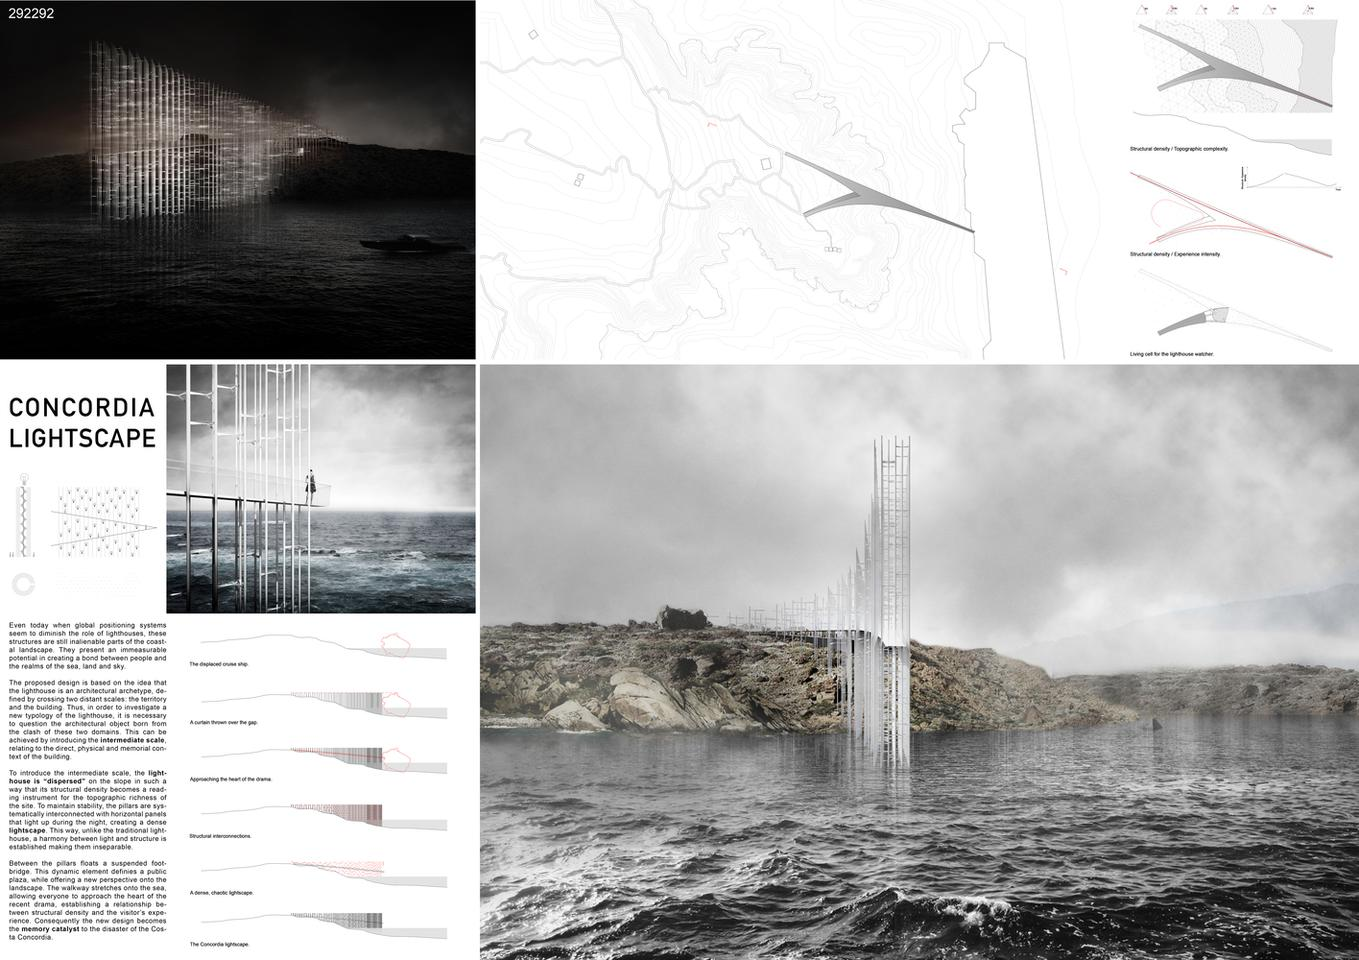 Architectural competition host matterbetter put a call out for designers and architects to conceive an improved lighthouse